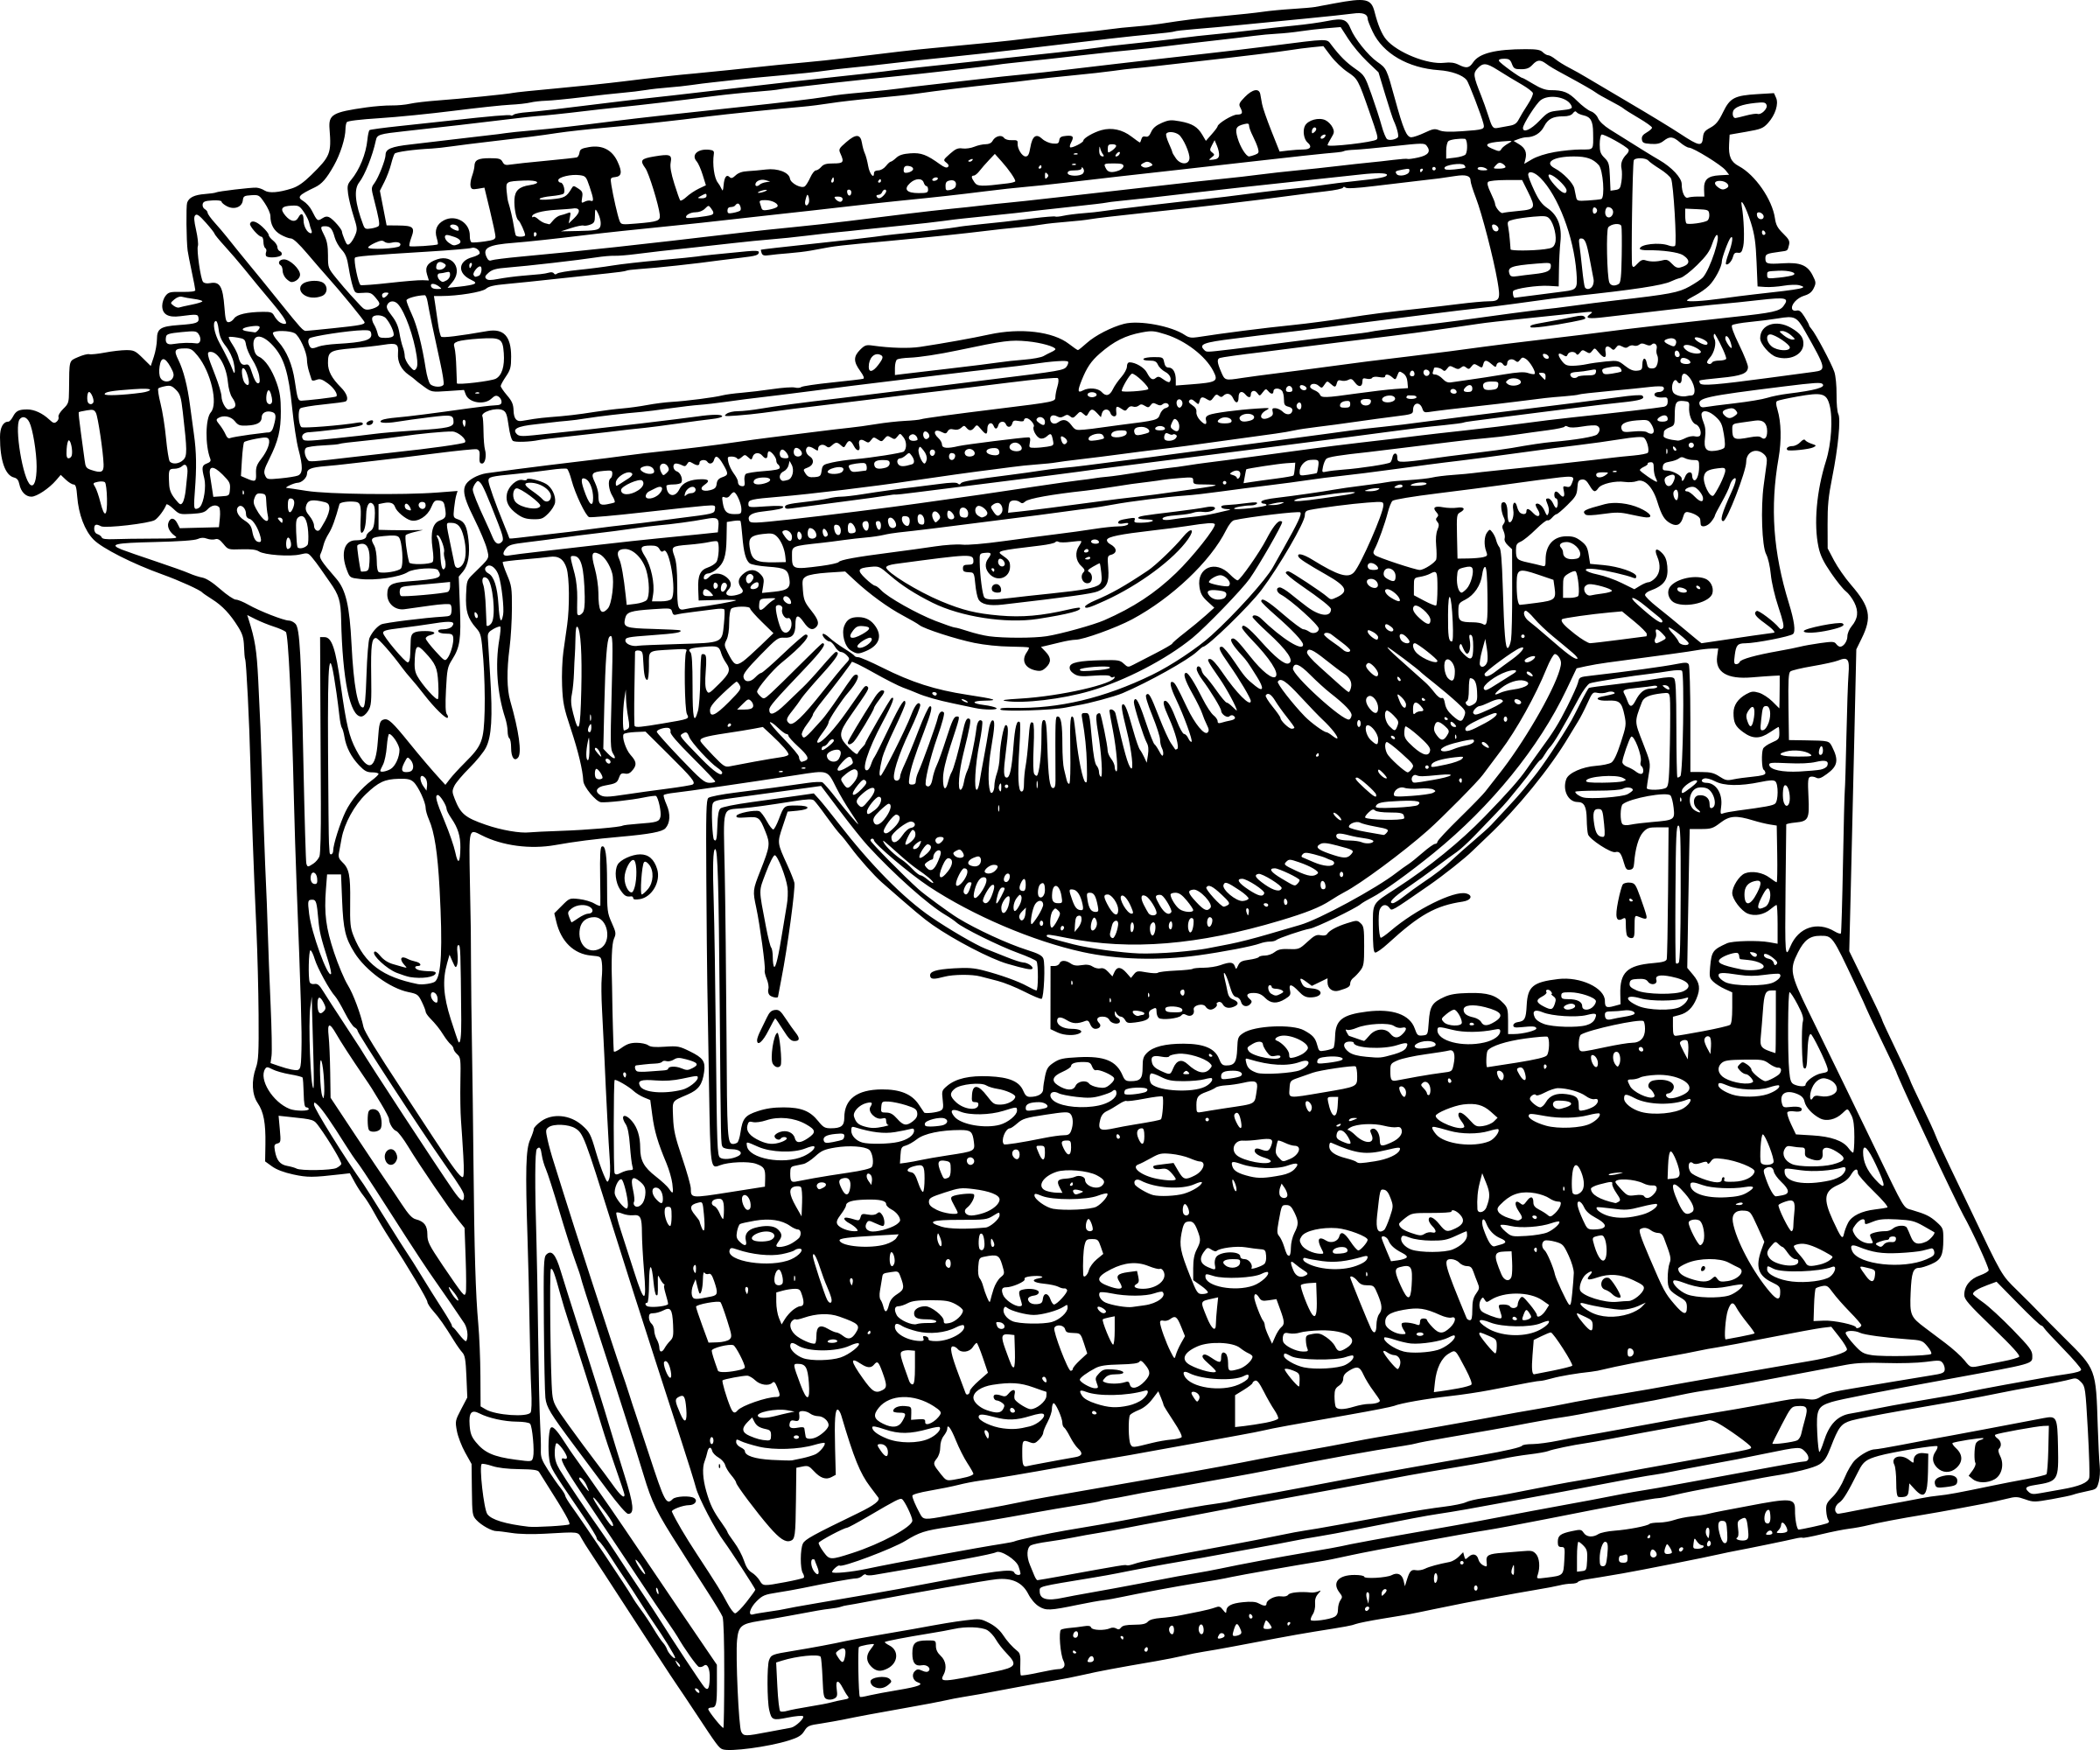 banner stock Typewriter clipart black and white. Old transparent png stickpng